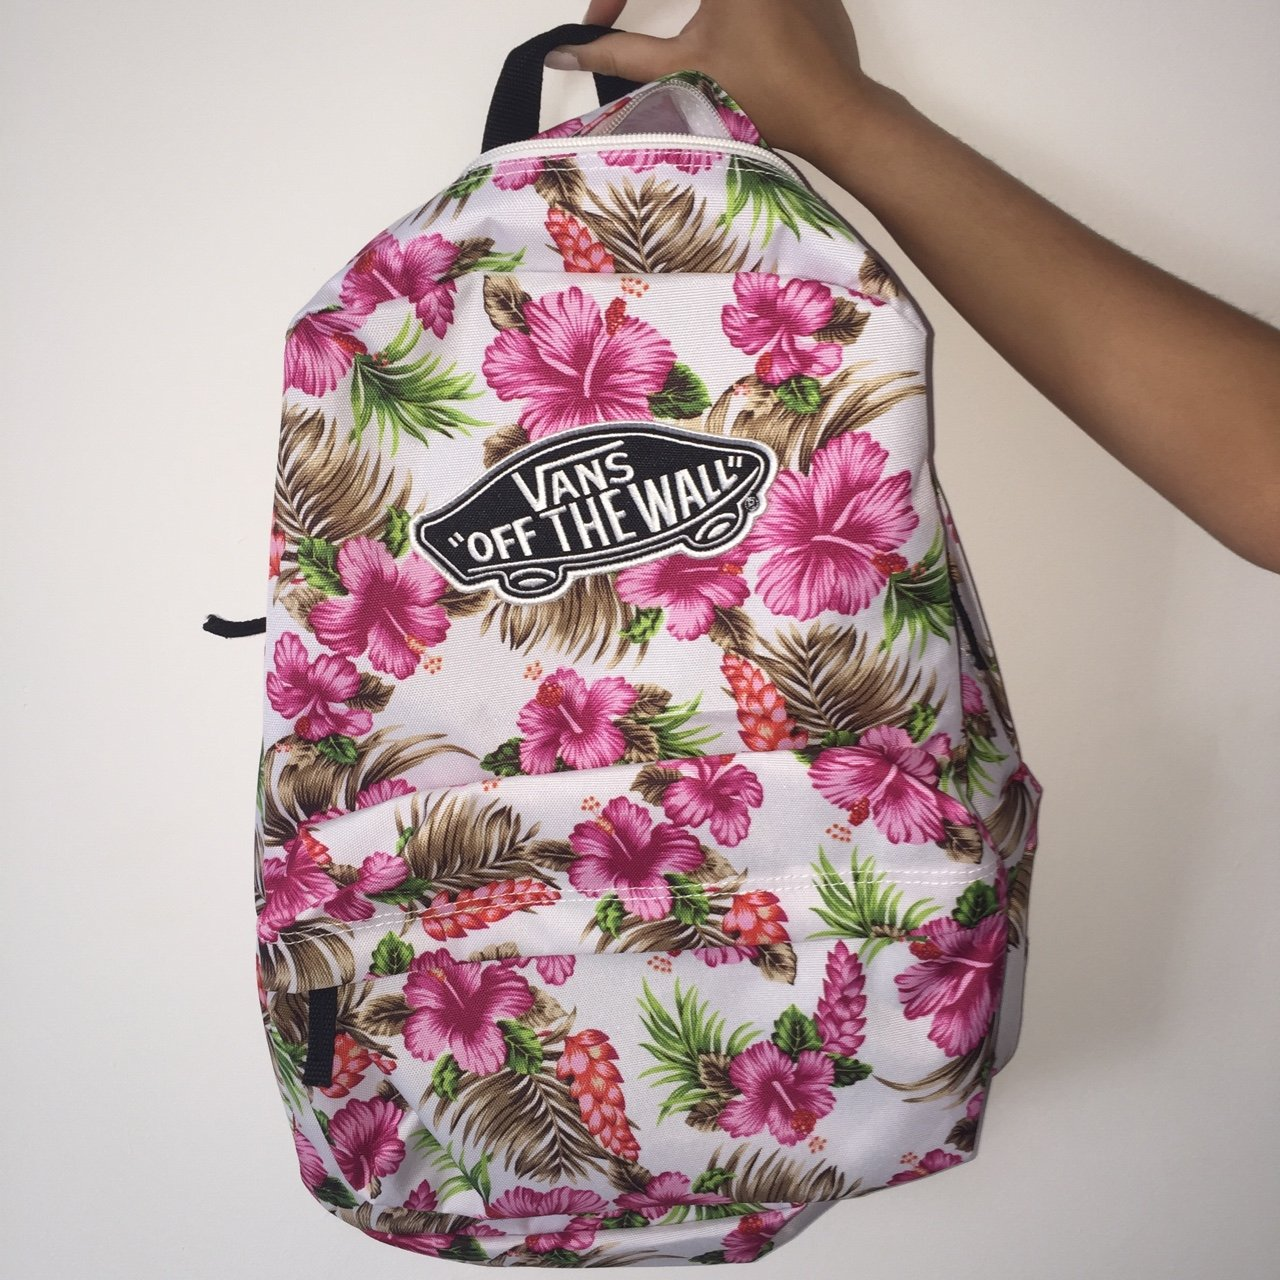 5dfa1f9e91 Brand new vans backpack. Never used!! Pink flowers and white - Depop